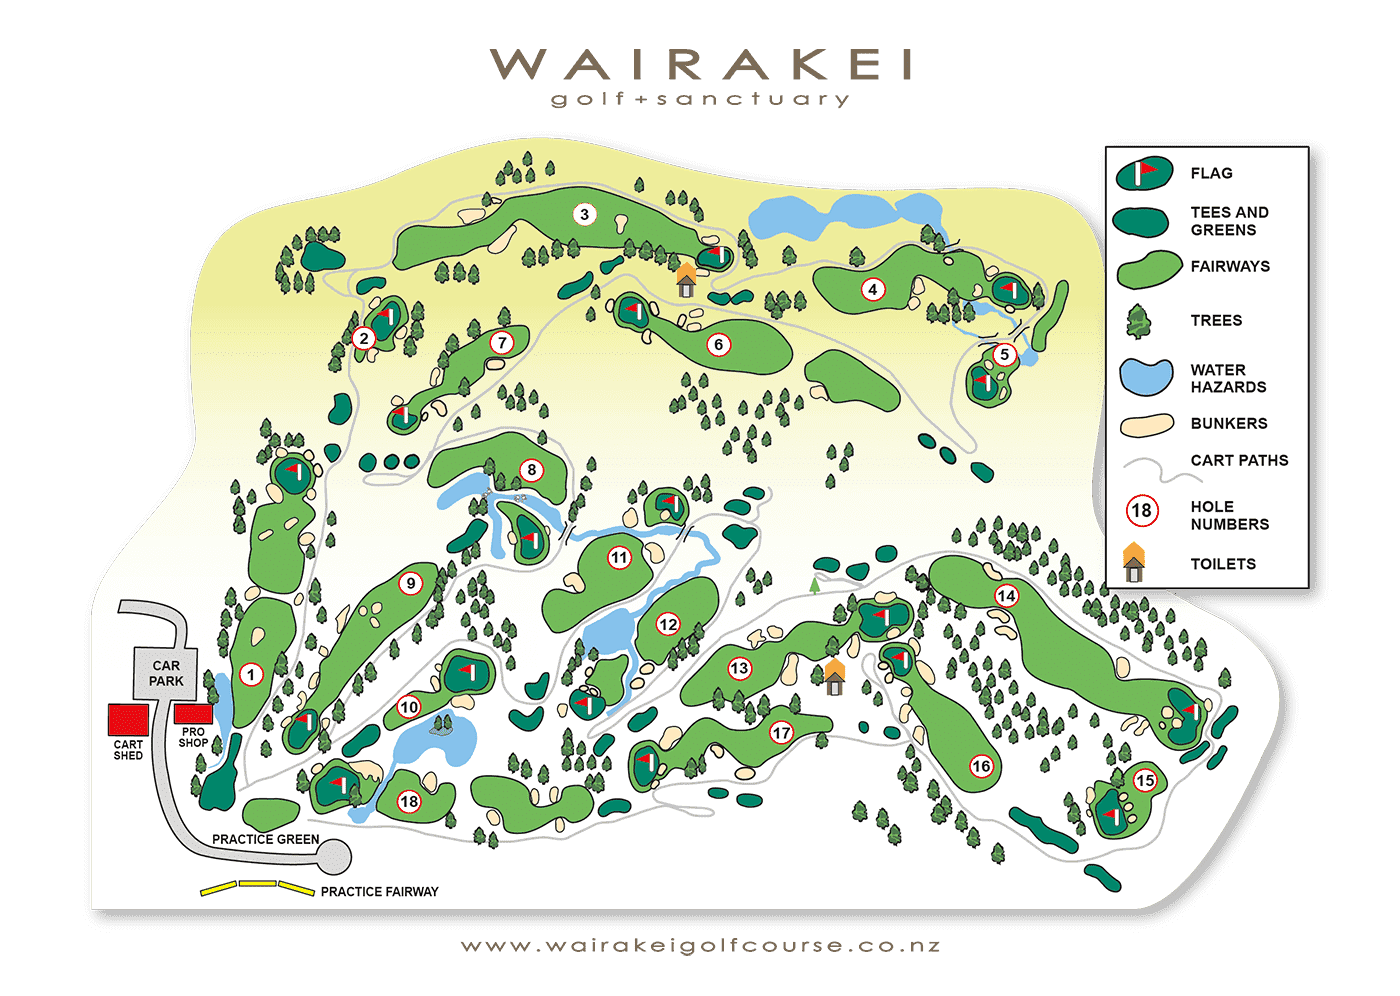 Wairakei International Golf Course | Best Golf Courses in New Zealand | New Zealand Golf Courses